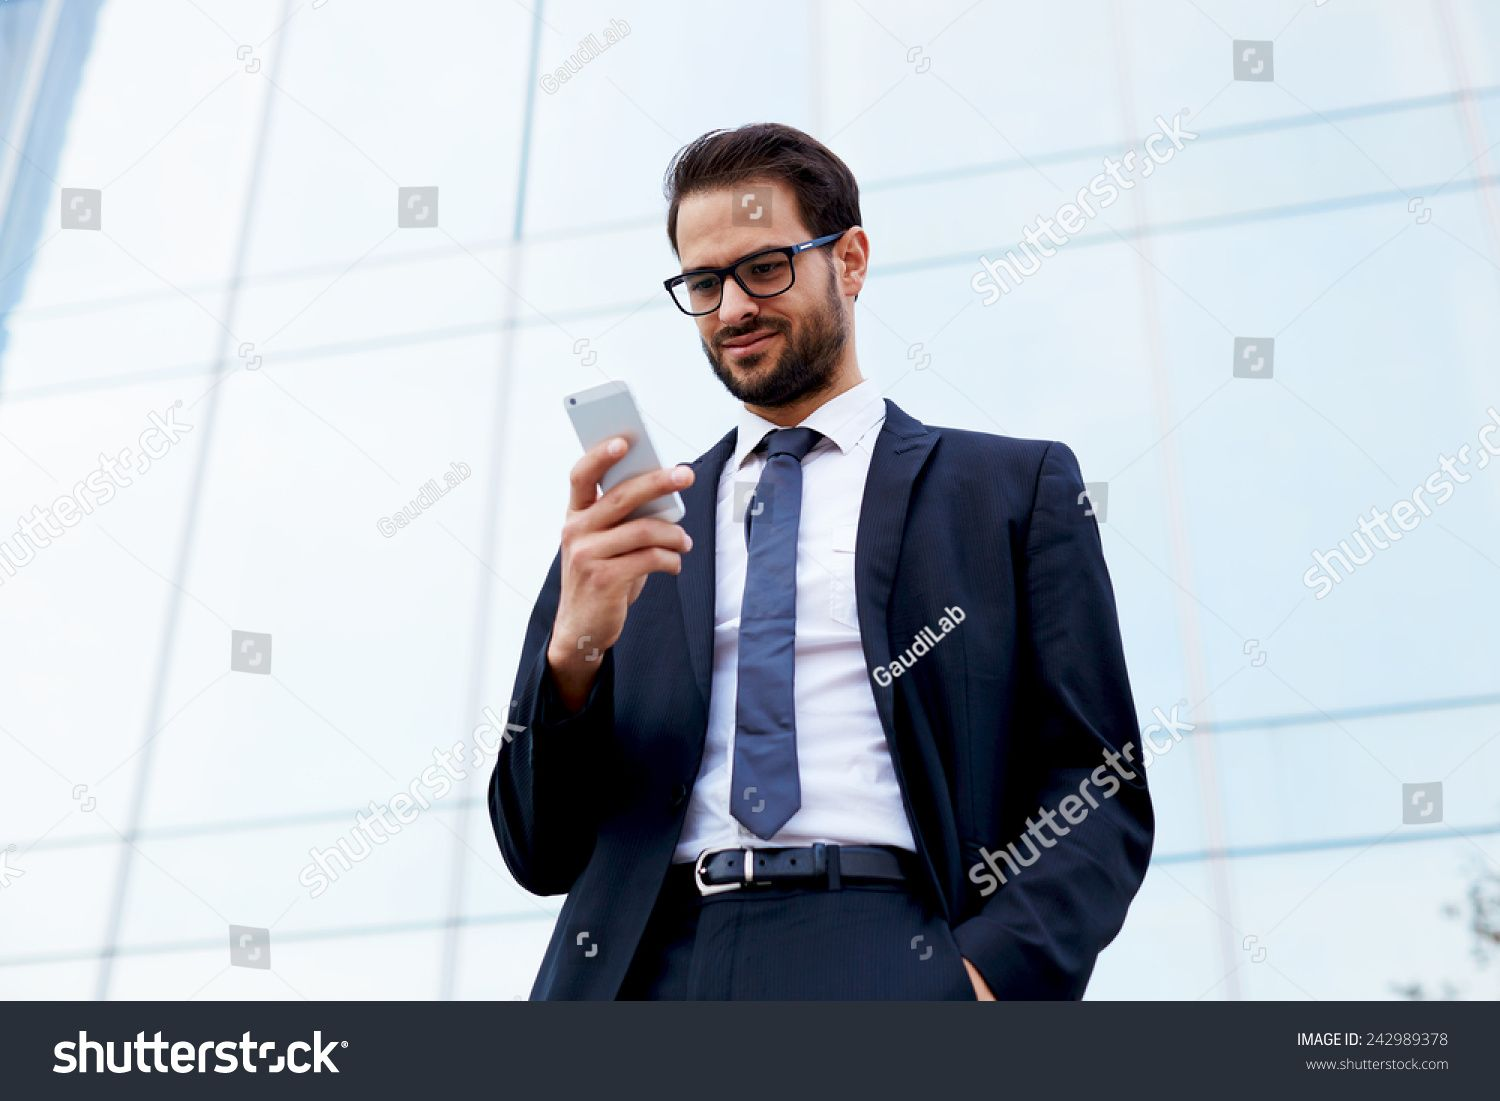 Happy Businessman Smiling As He Reads A Text Message Standing